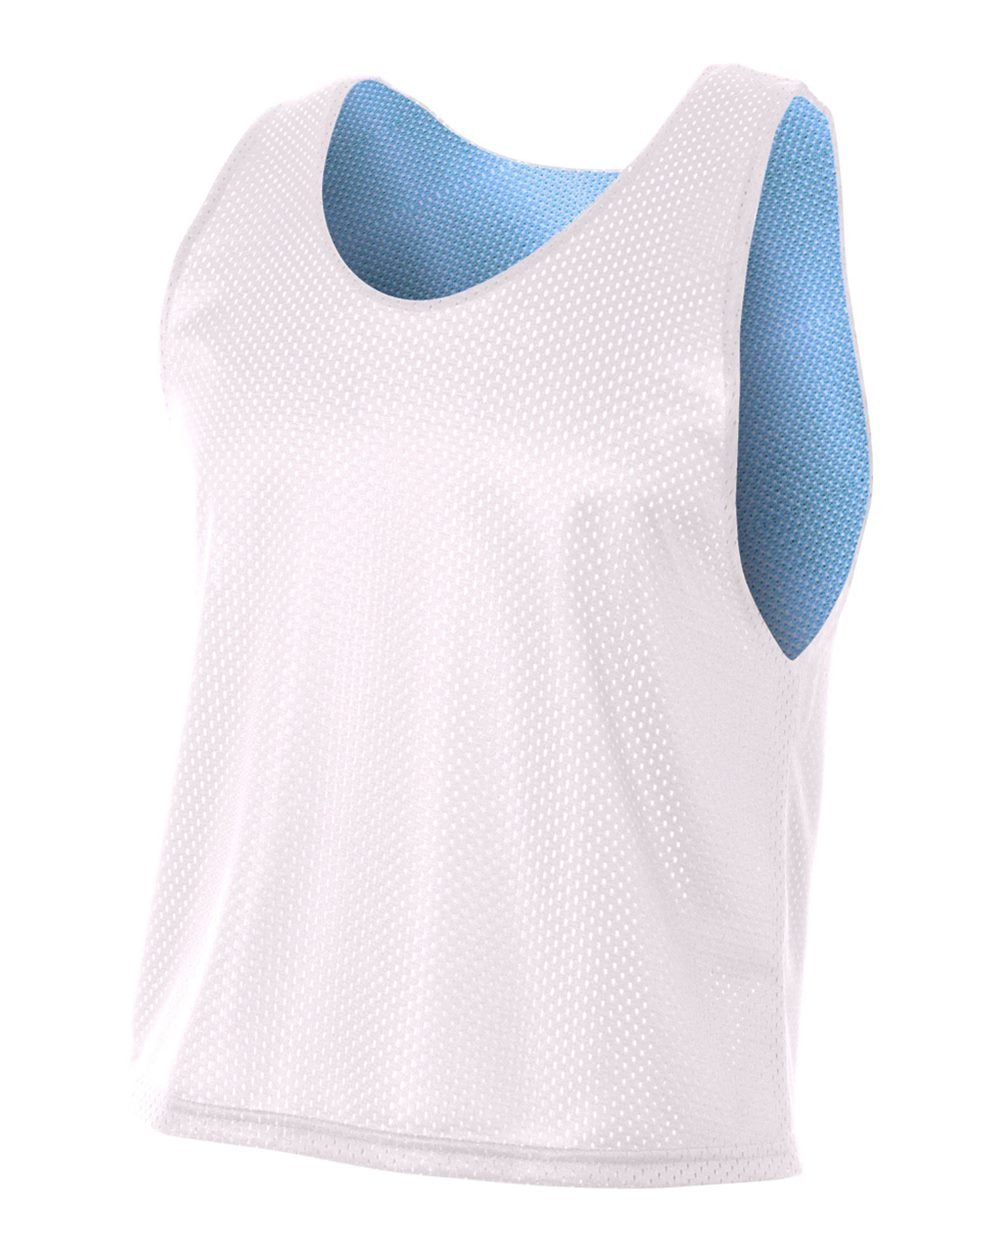 97e9337e6e6 Get Quotations · Athletic Pinnies Reversible Moisture Wicking Practice  Lacrosse